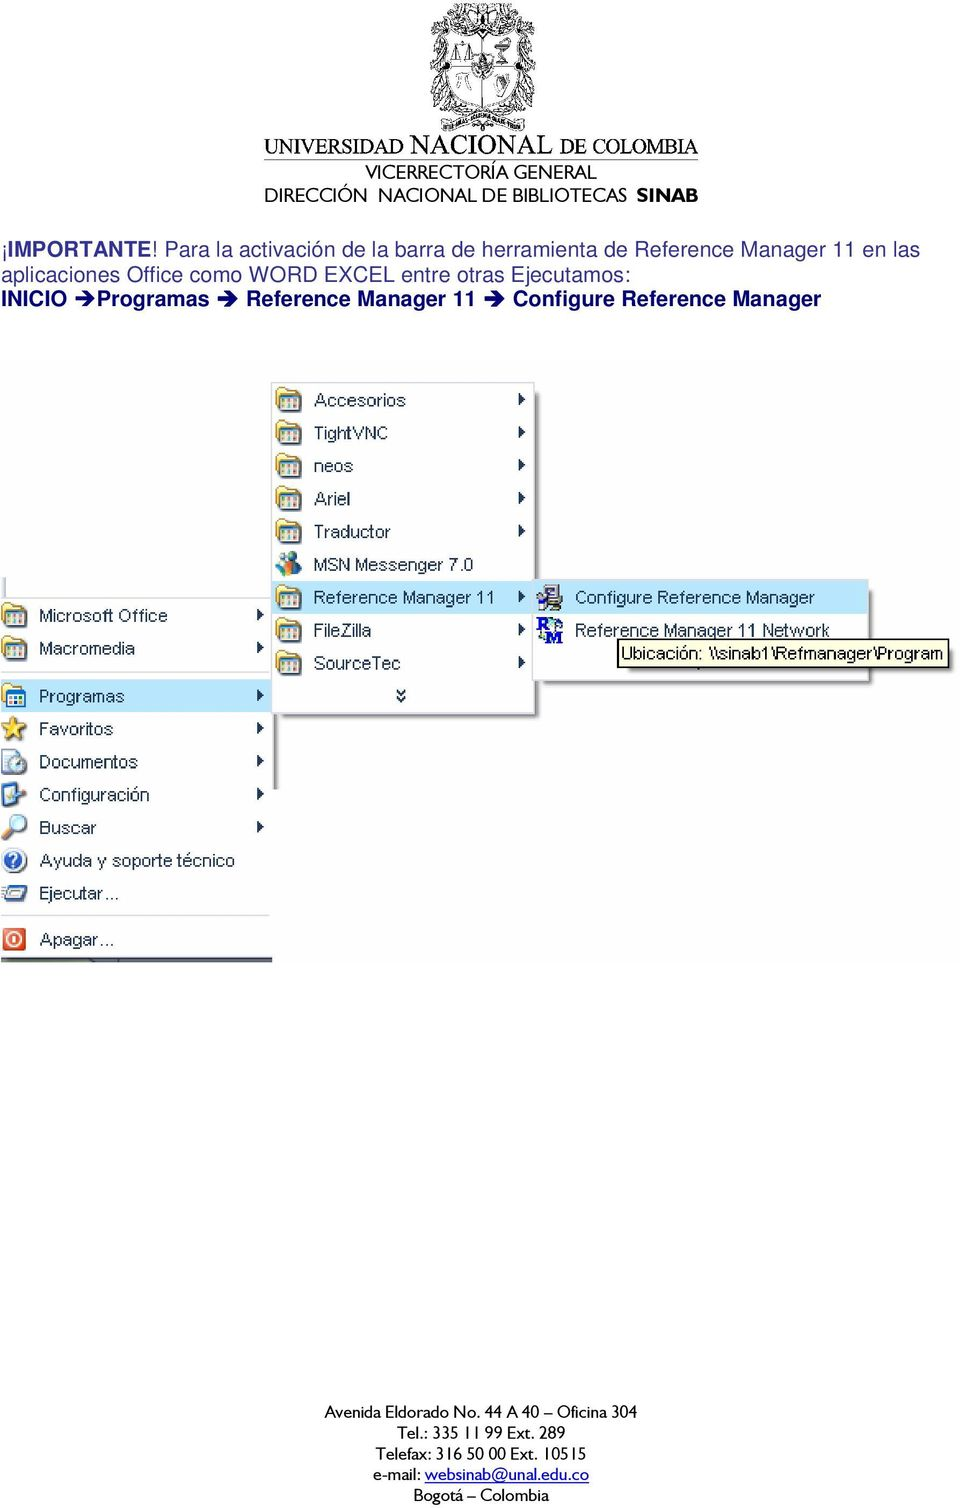 Reference Manager 11 en las aplicaciones Office como